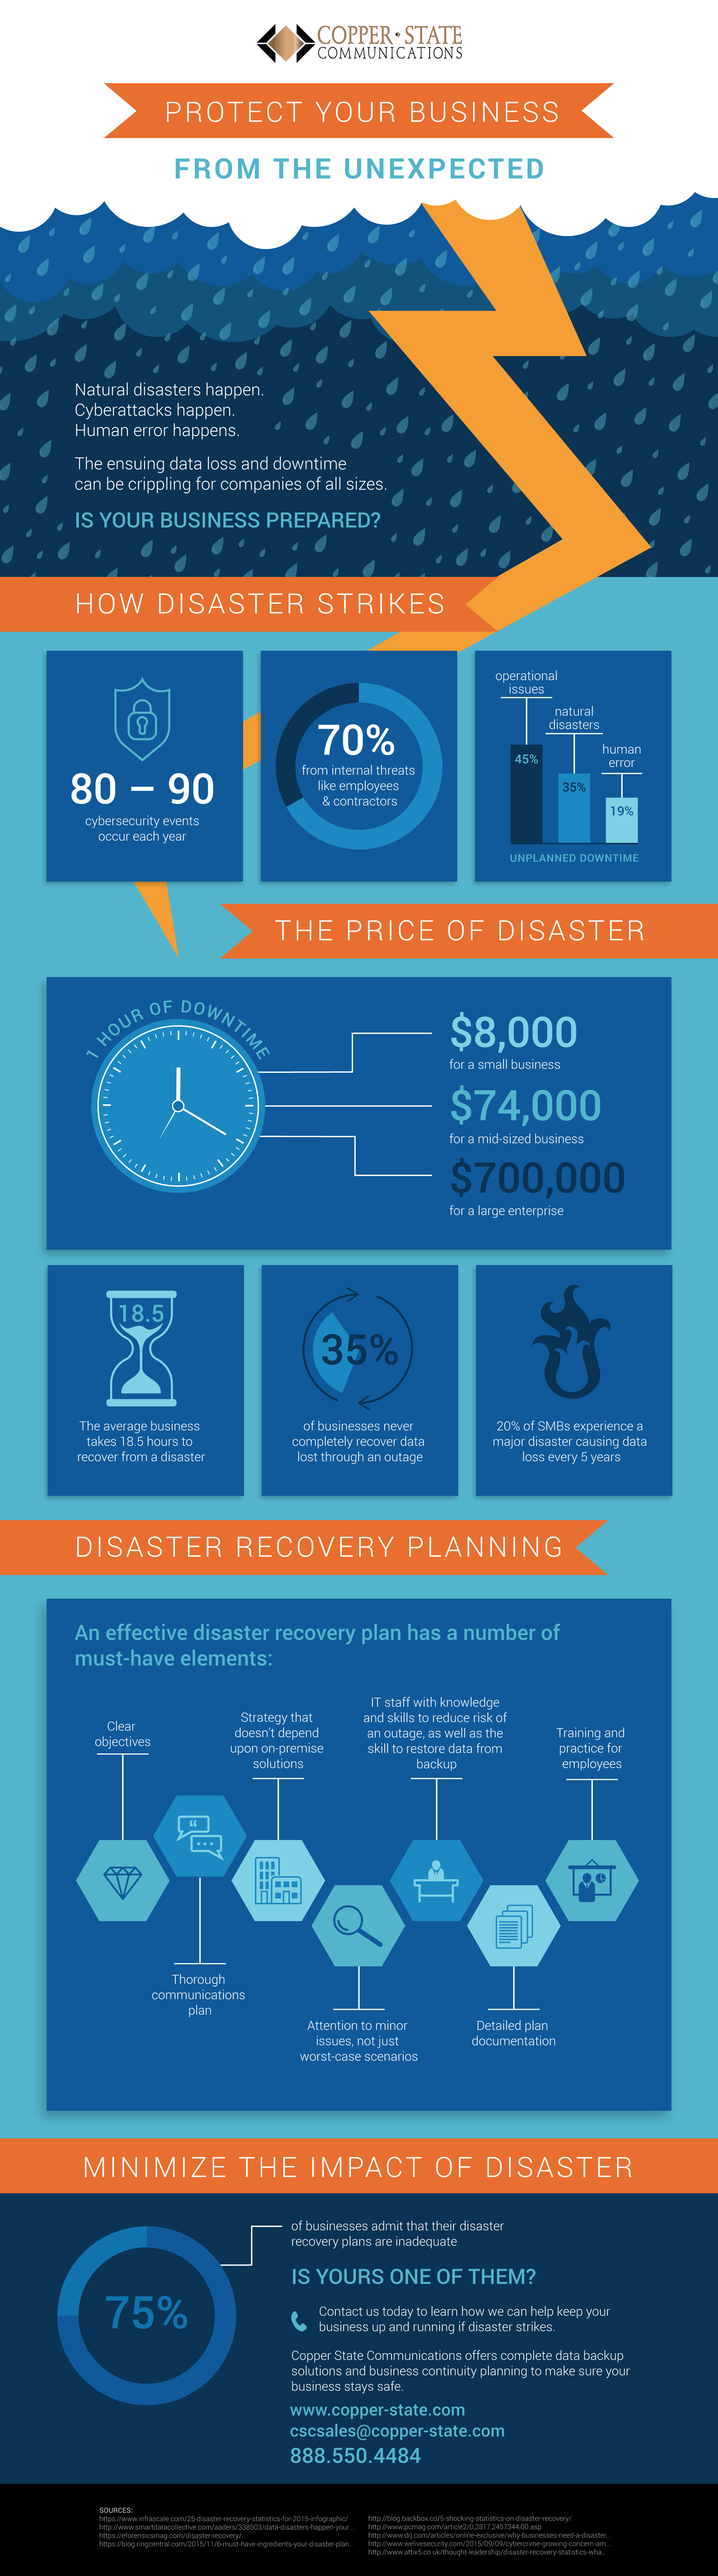 Improve your business continuity with disaster recovery.